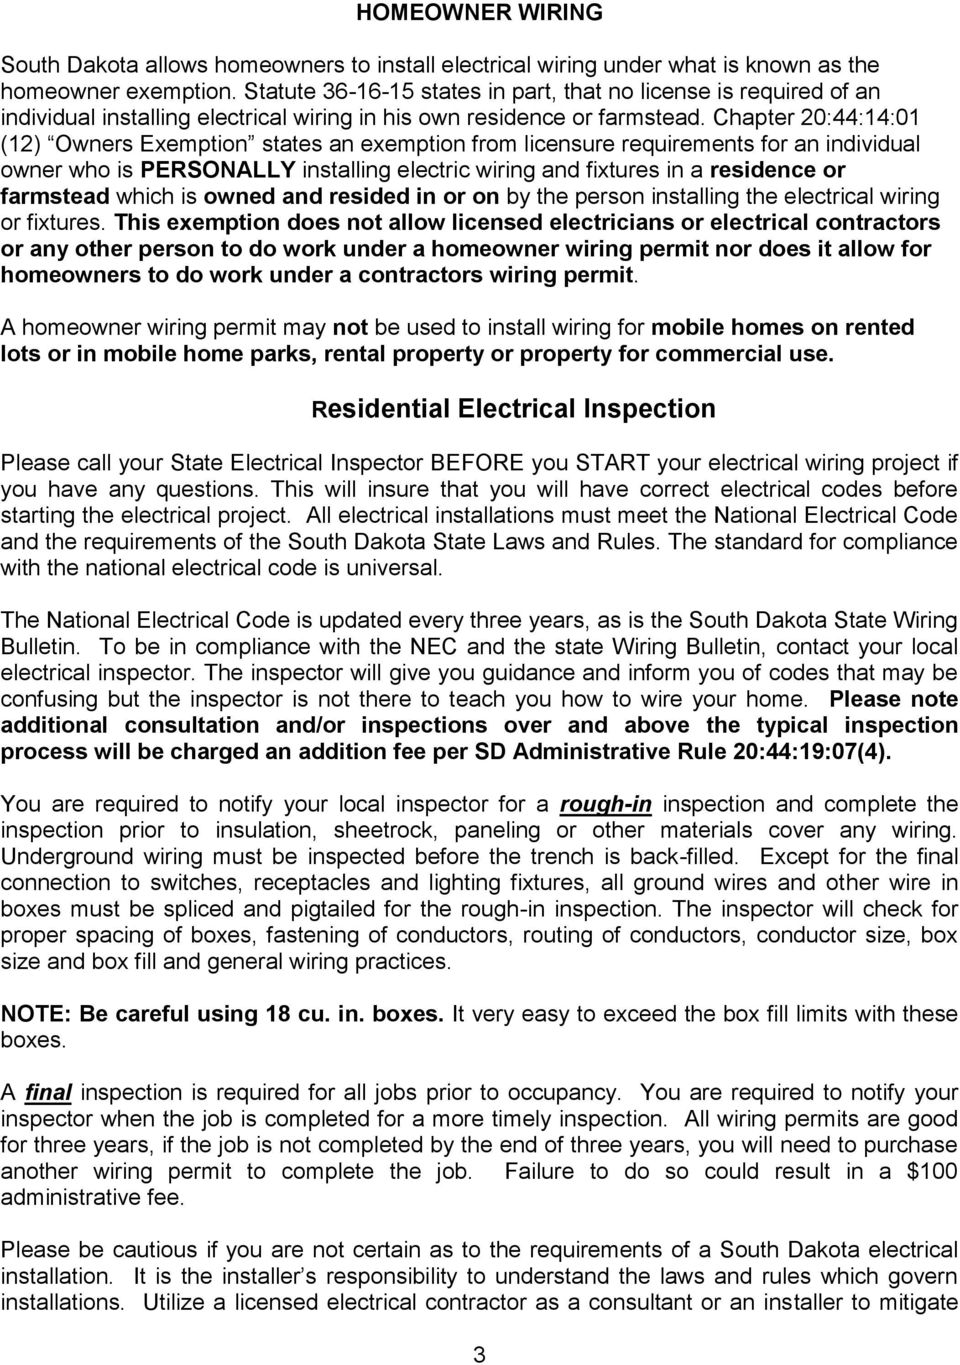 Homeowner Wiring Please Remember You Are Required To Contact Your Section Three Electrical Installation Chapter 20441401 12 Owners Exemption States An